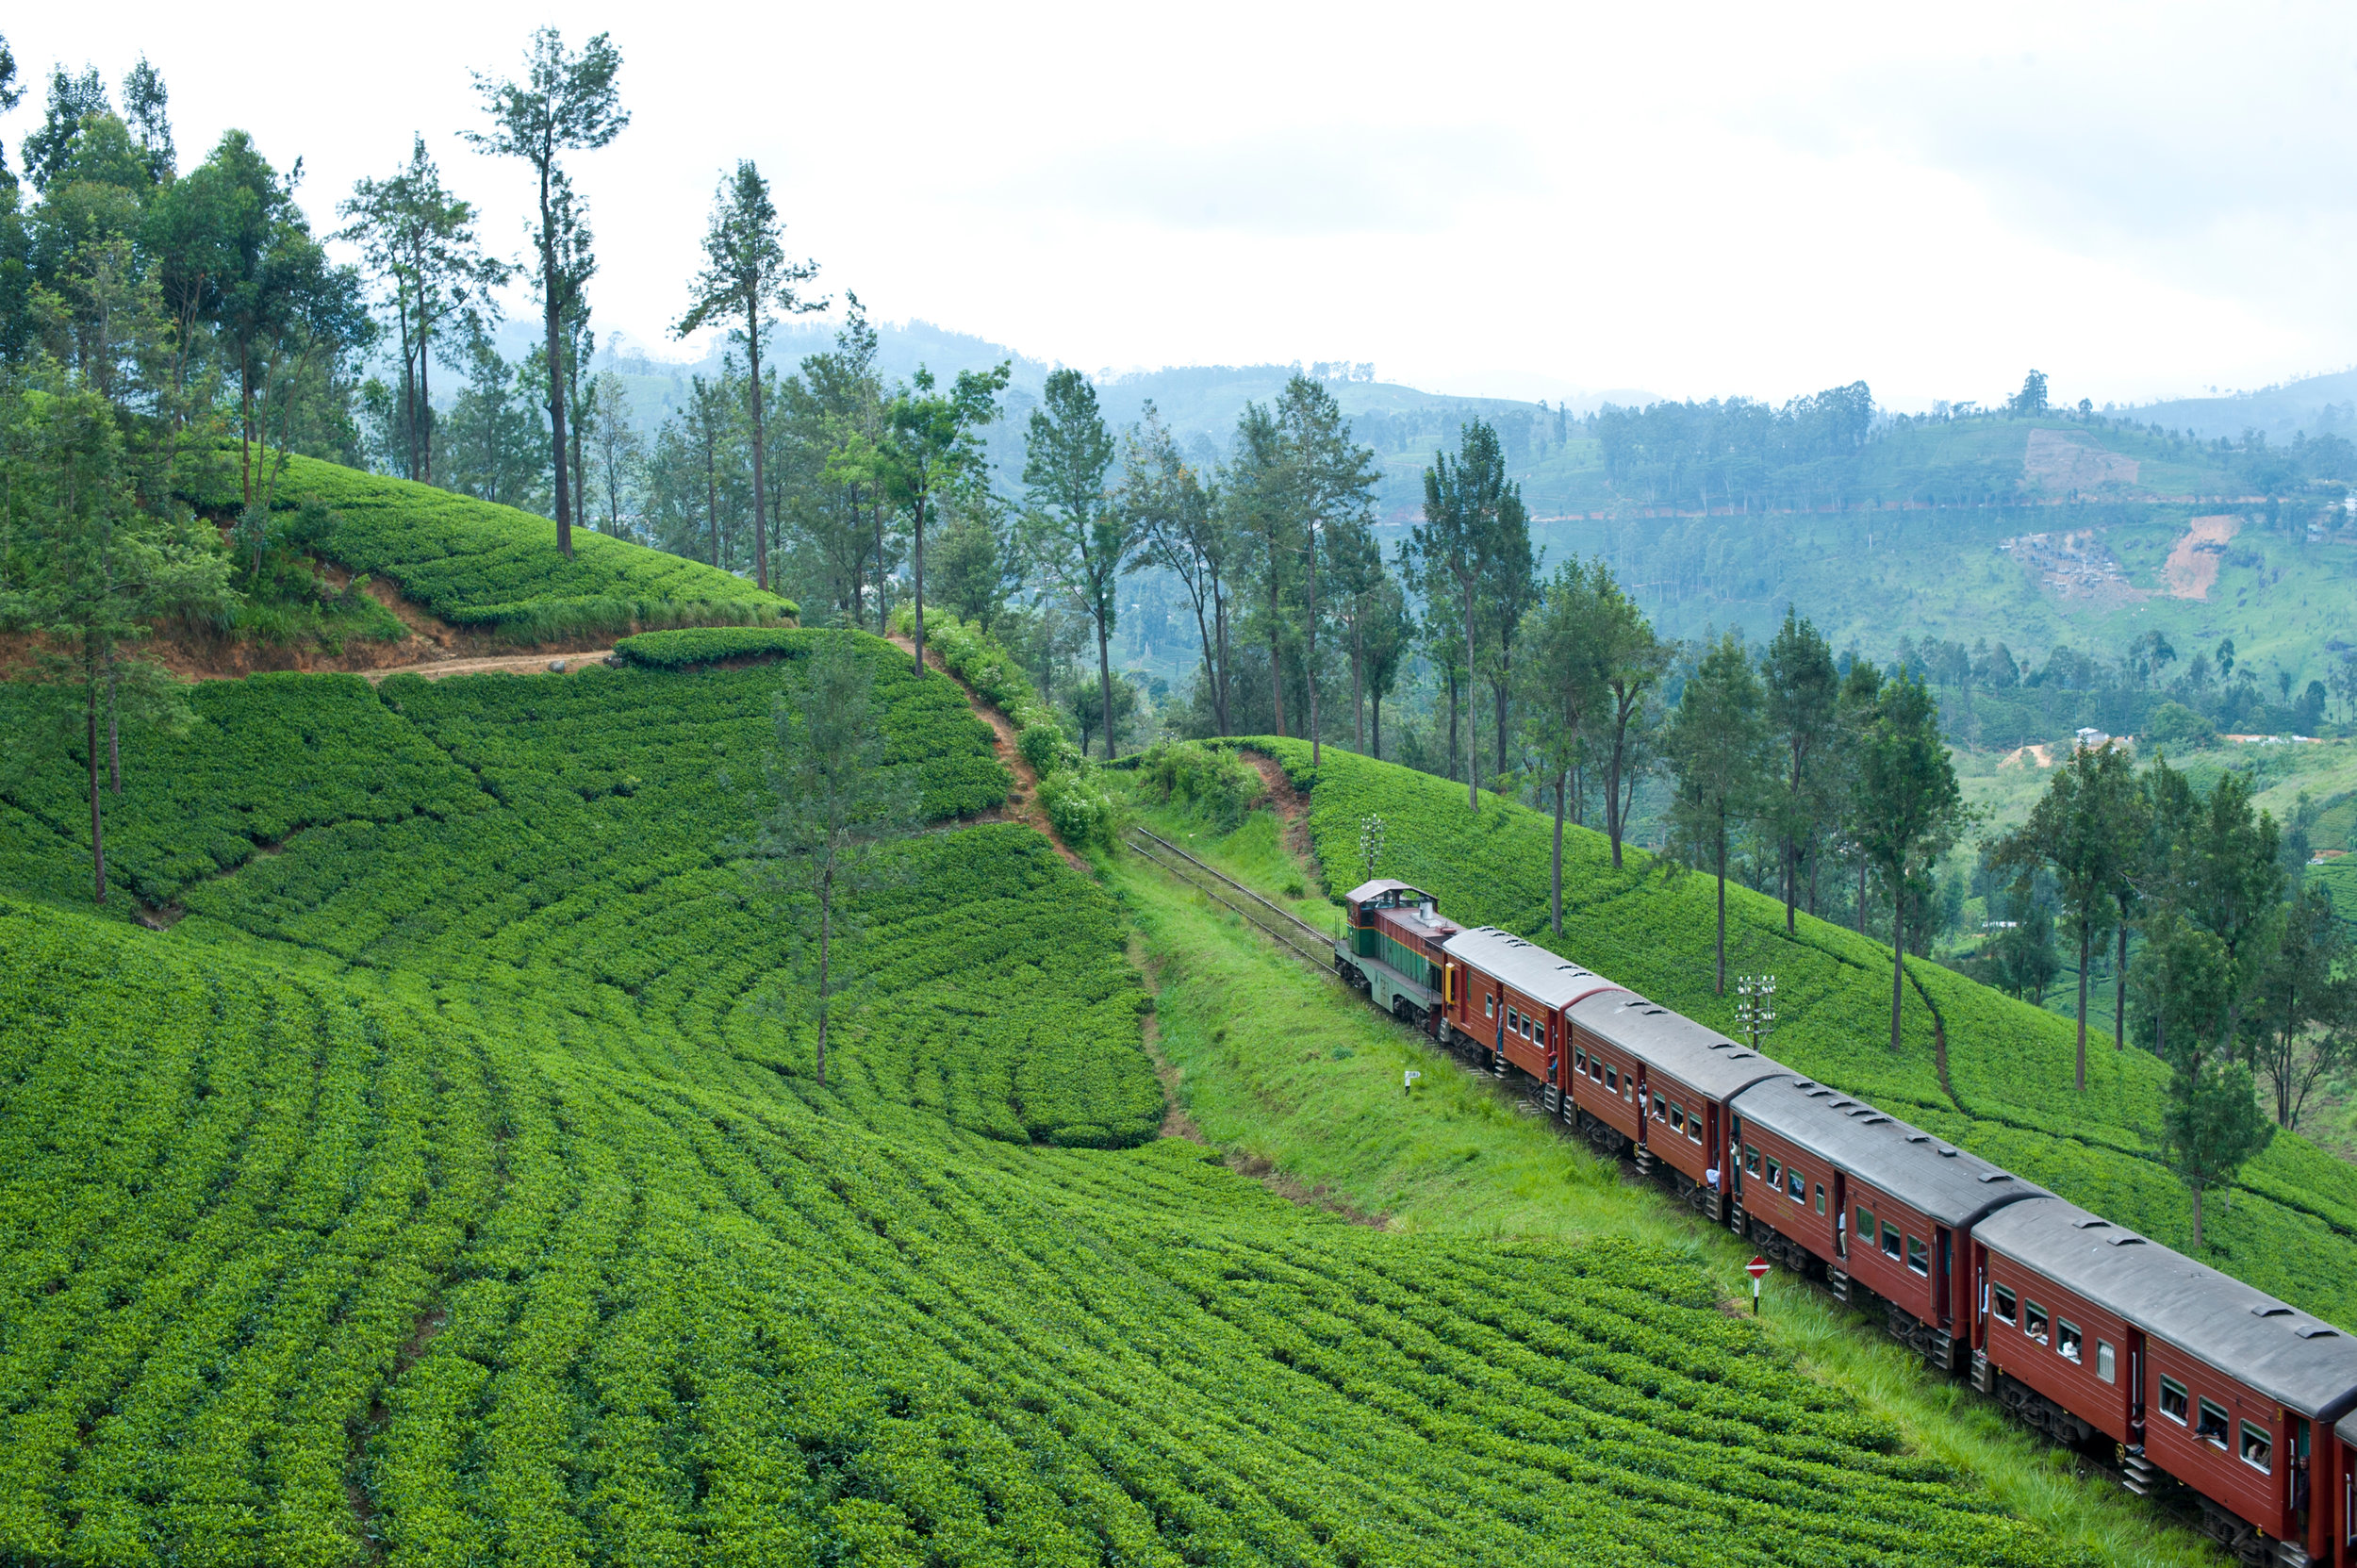 Train journey through tea plantations in Sri Lanka